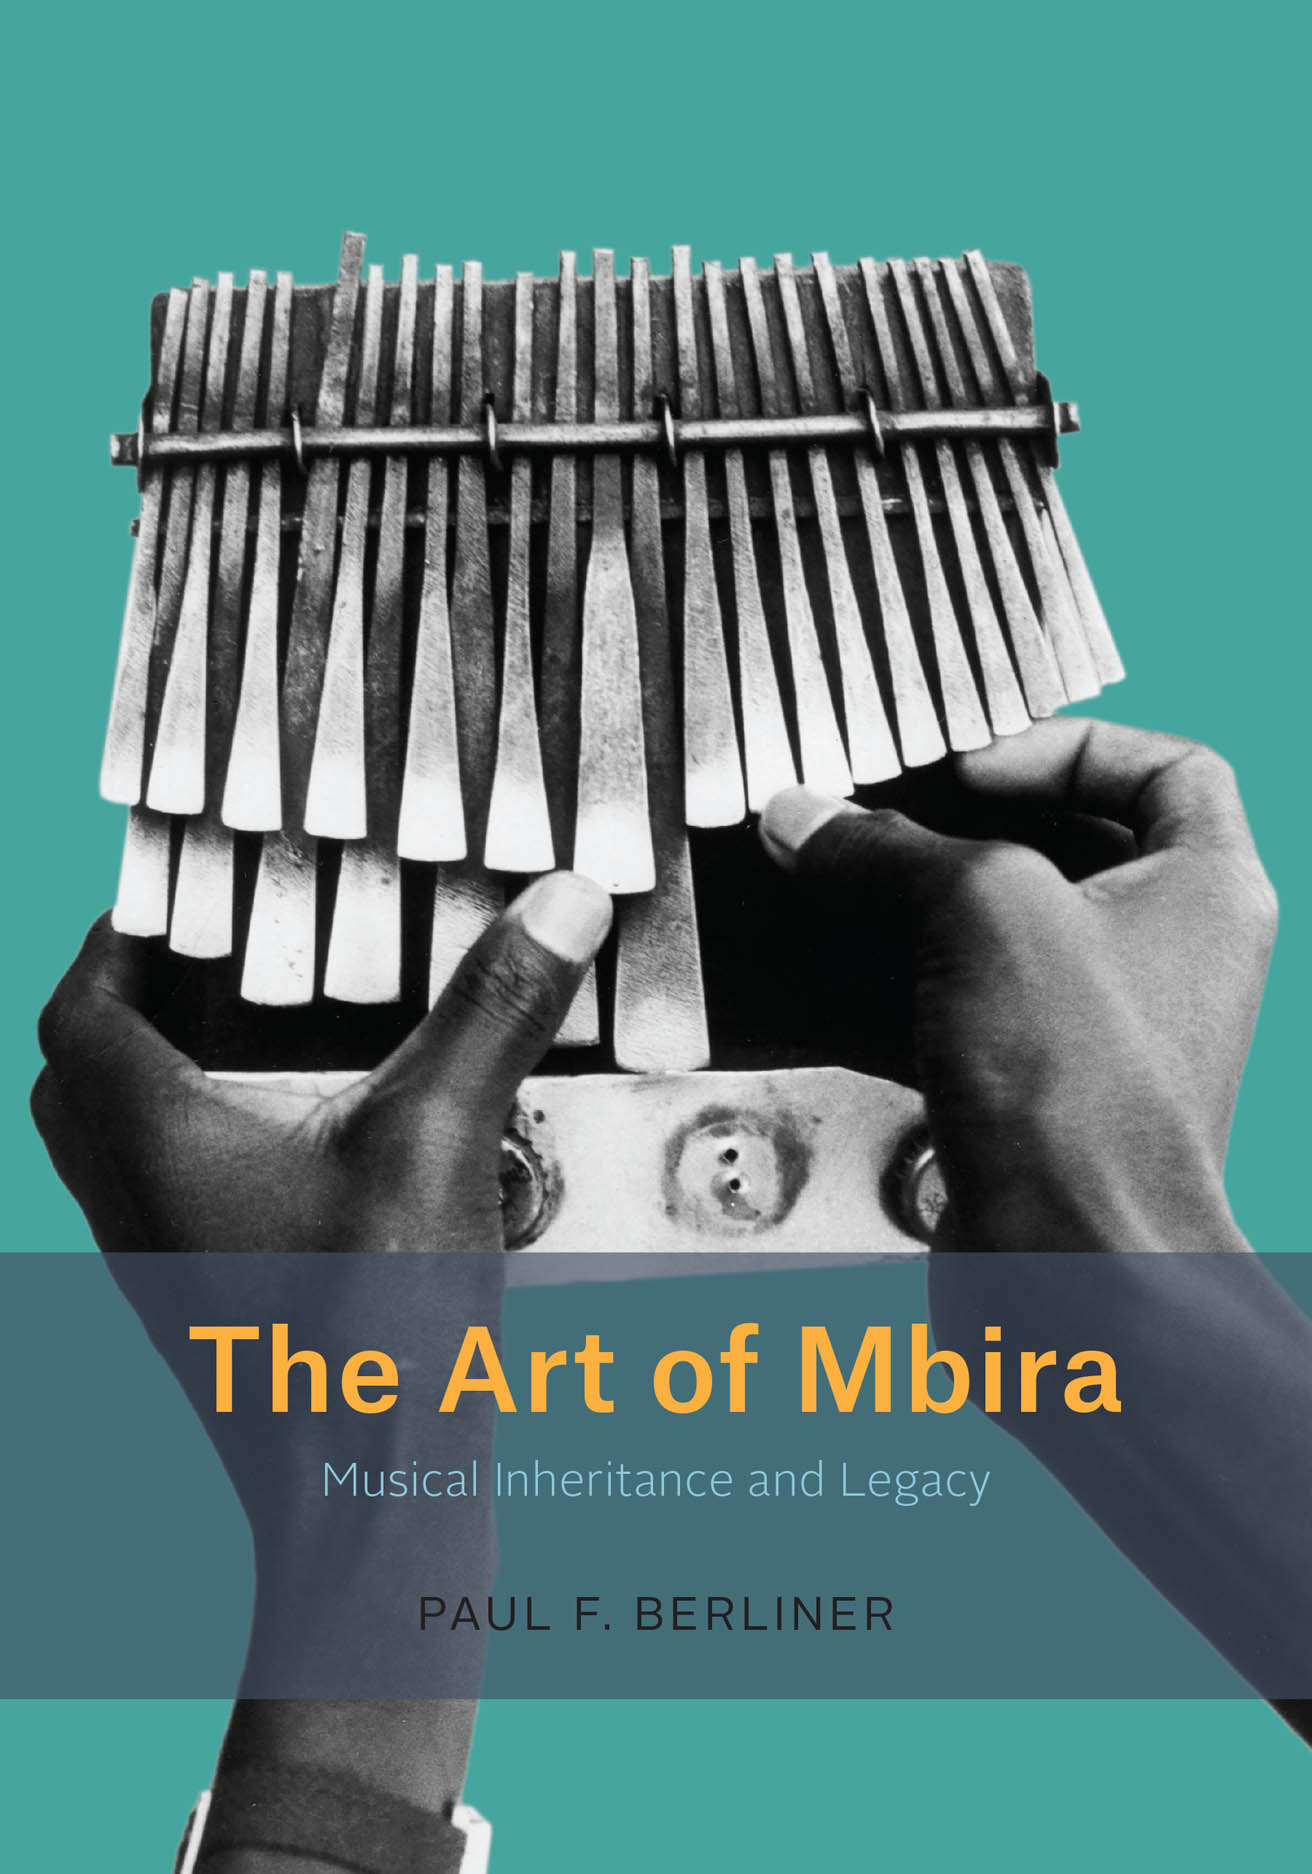 The Art of Mbira: Musical Inheritance and Legacy